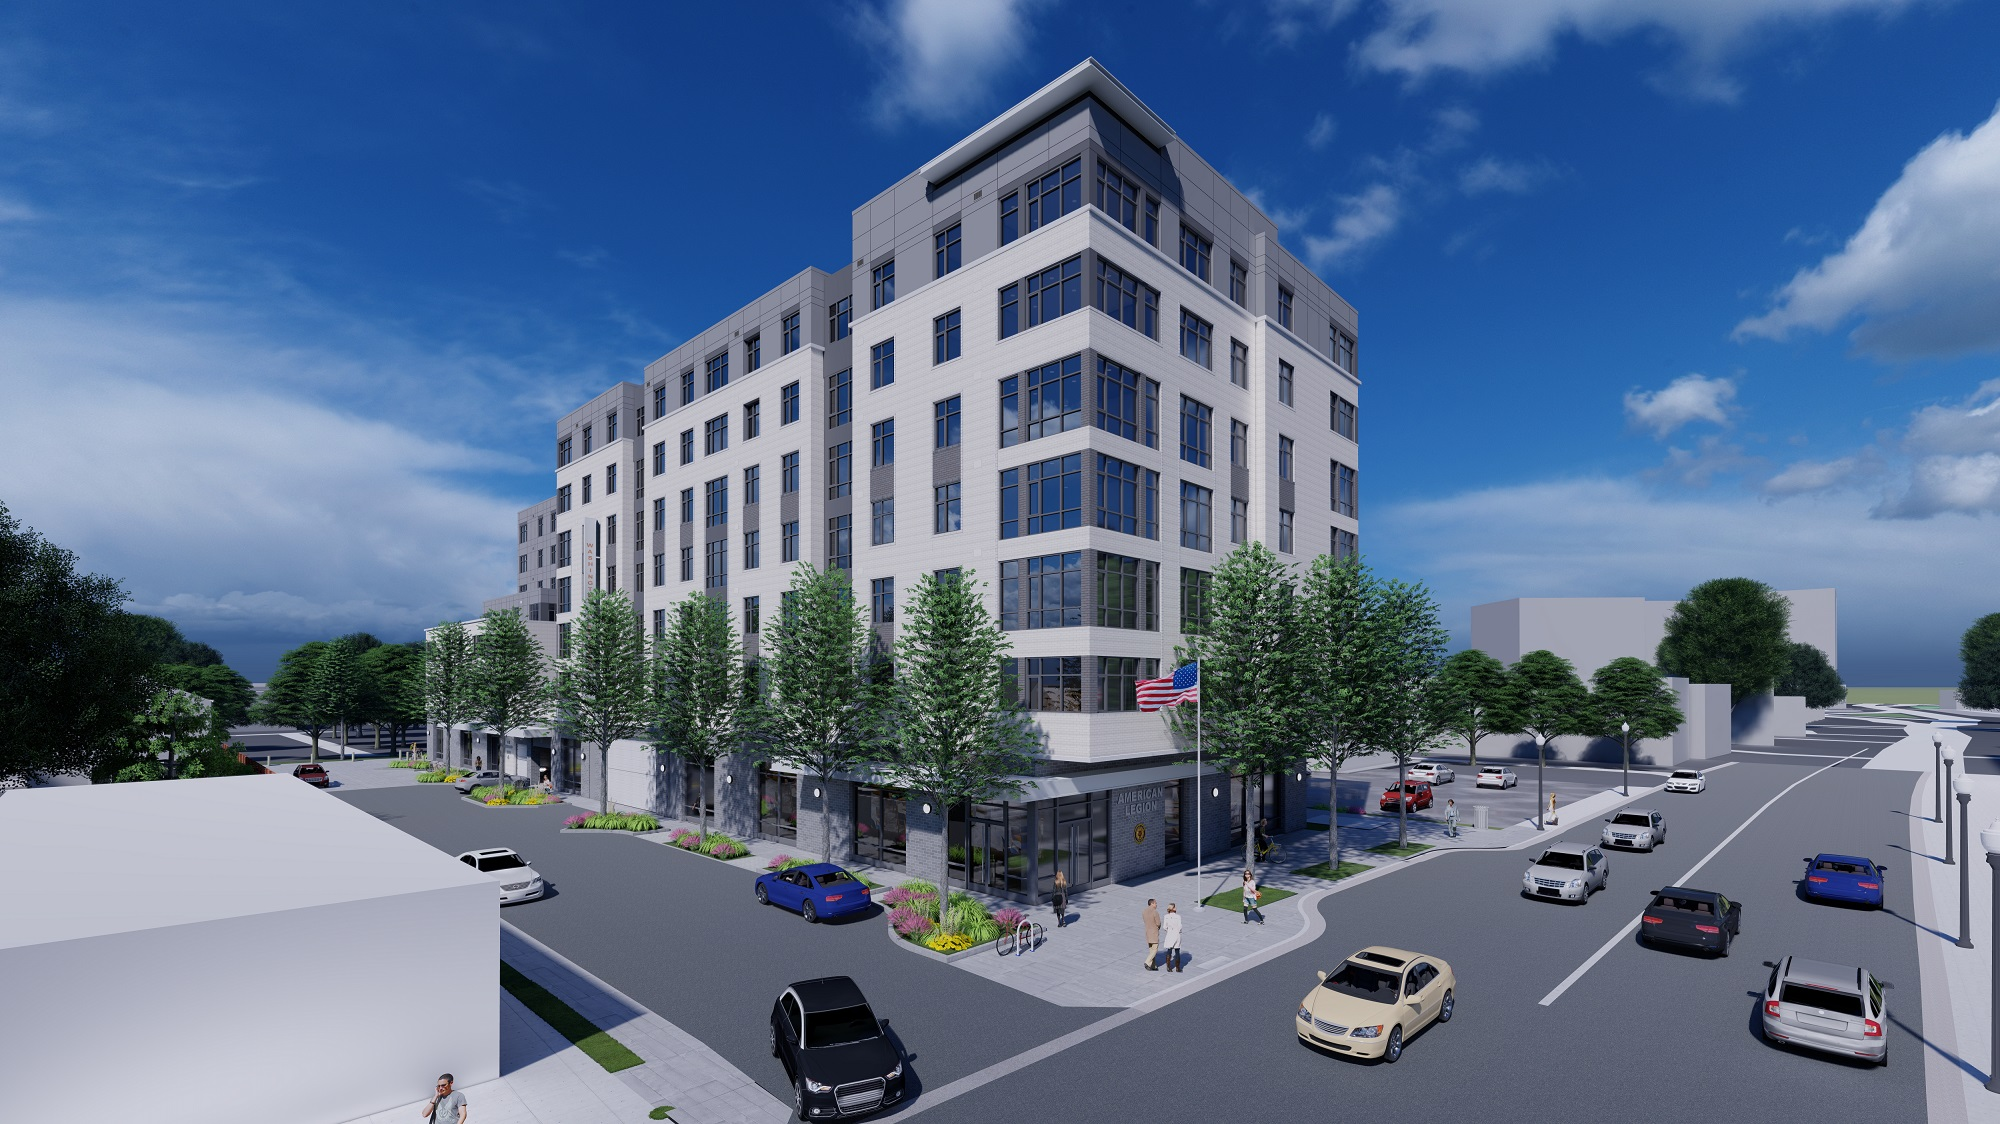 In 2017 The American Legion Post 139 Selected Apah To Redevelop Their Site Virginia Square Create 160 Affordable Apartments And A New